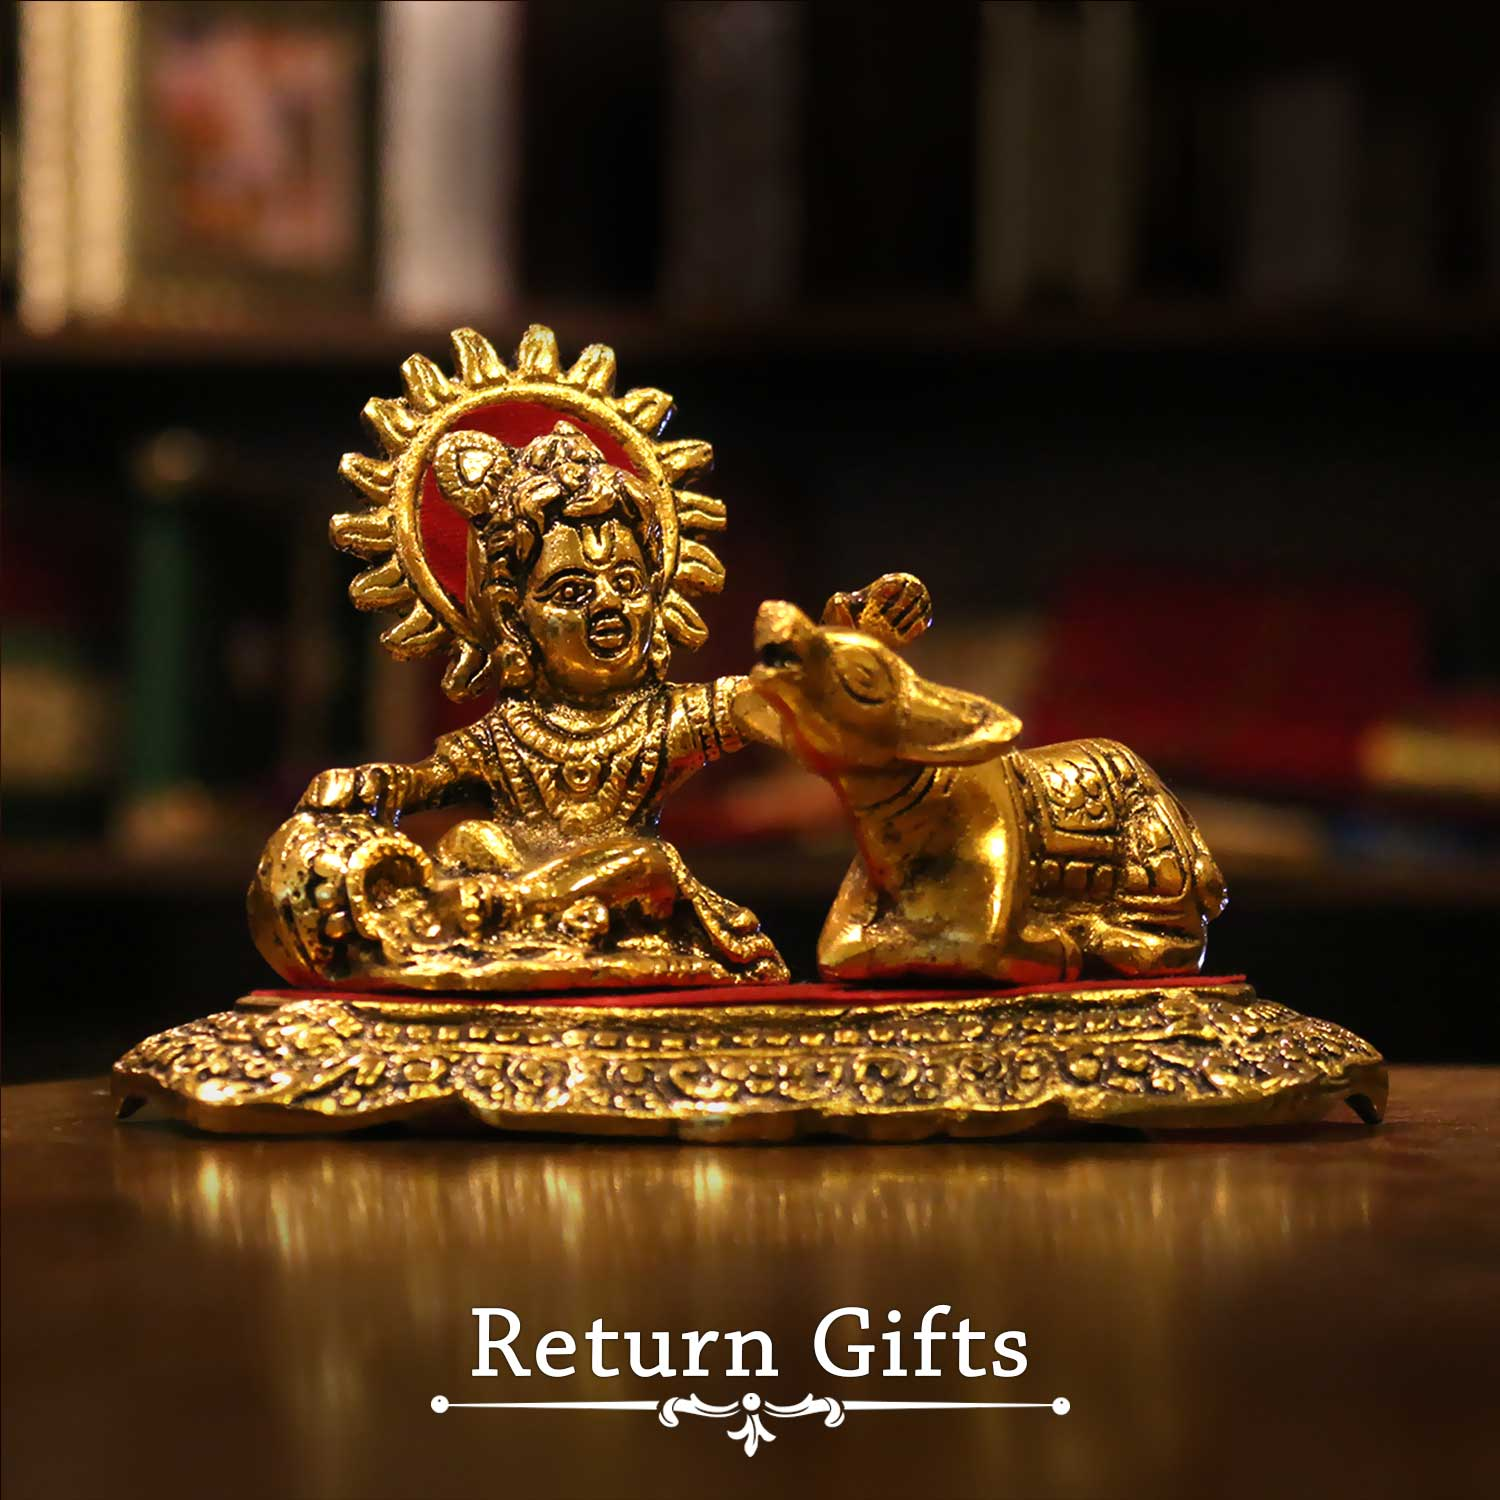 The Wedding Gift Shop: Return Gifts For Wedding, Birthday And More